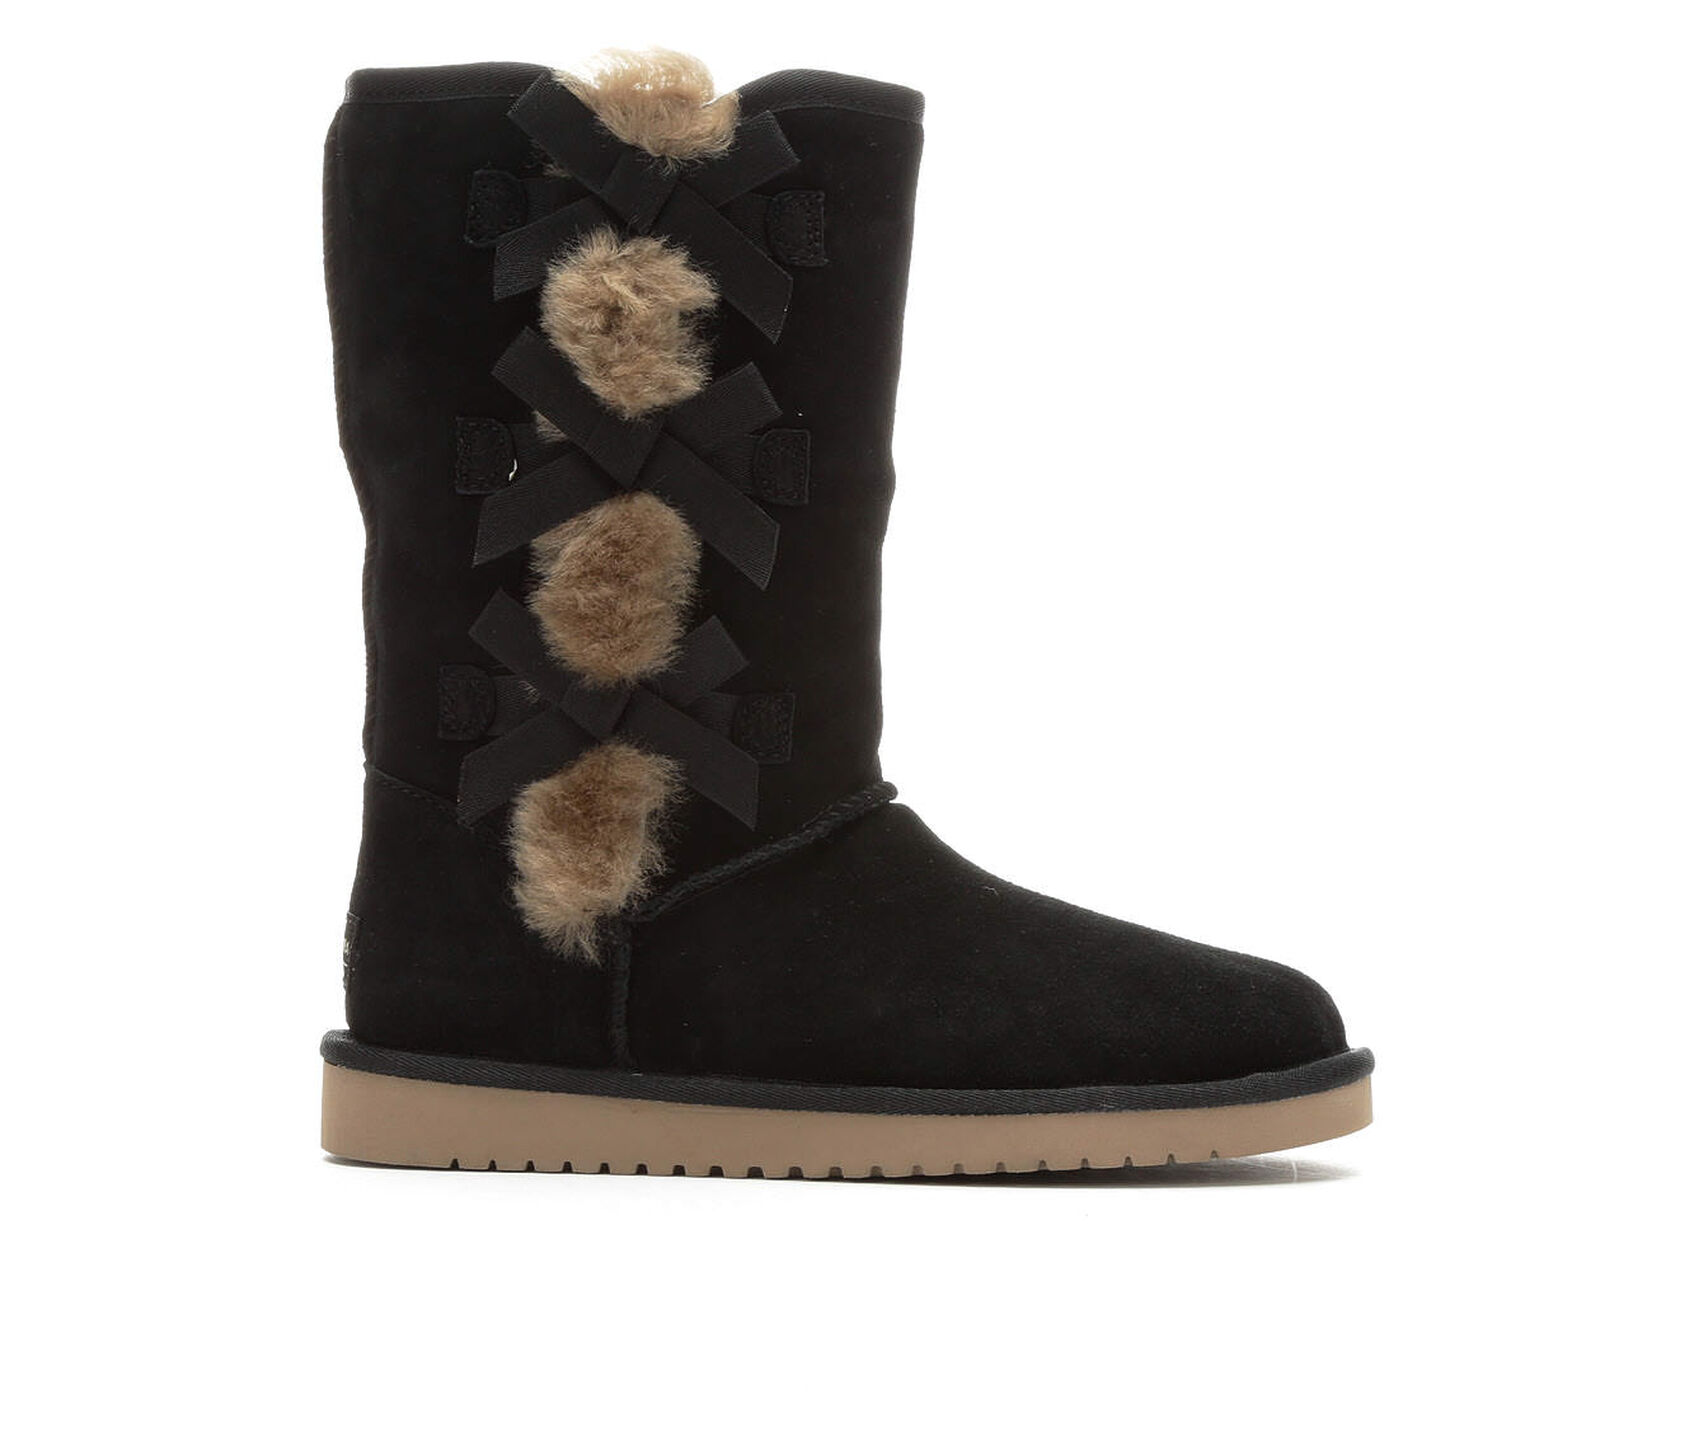 84e37be9527 Women's Koolaburra by UGG Victoria Tall Boots